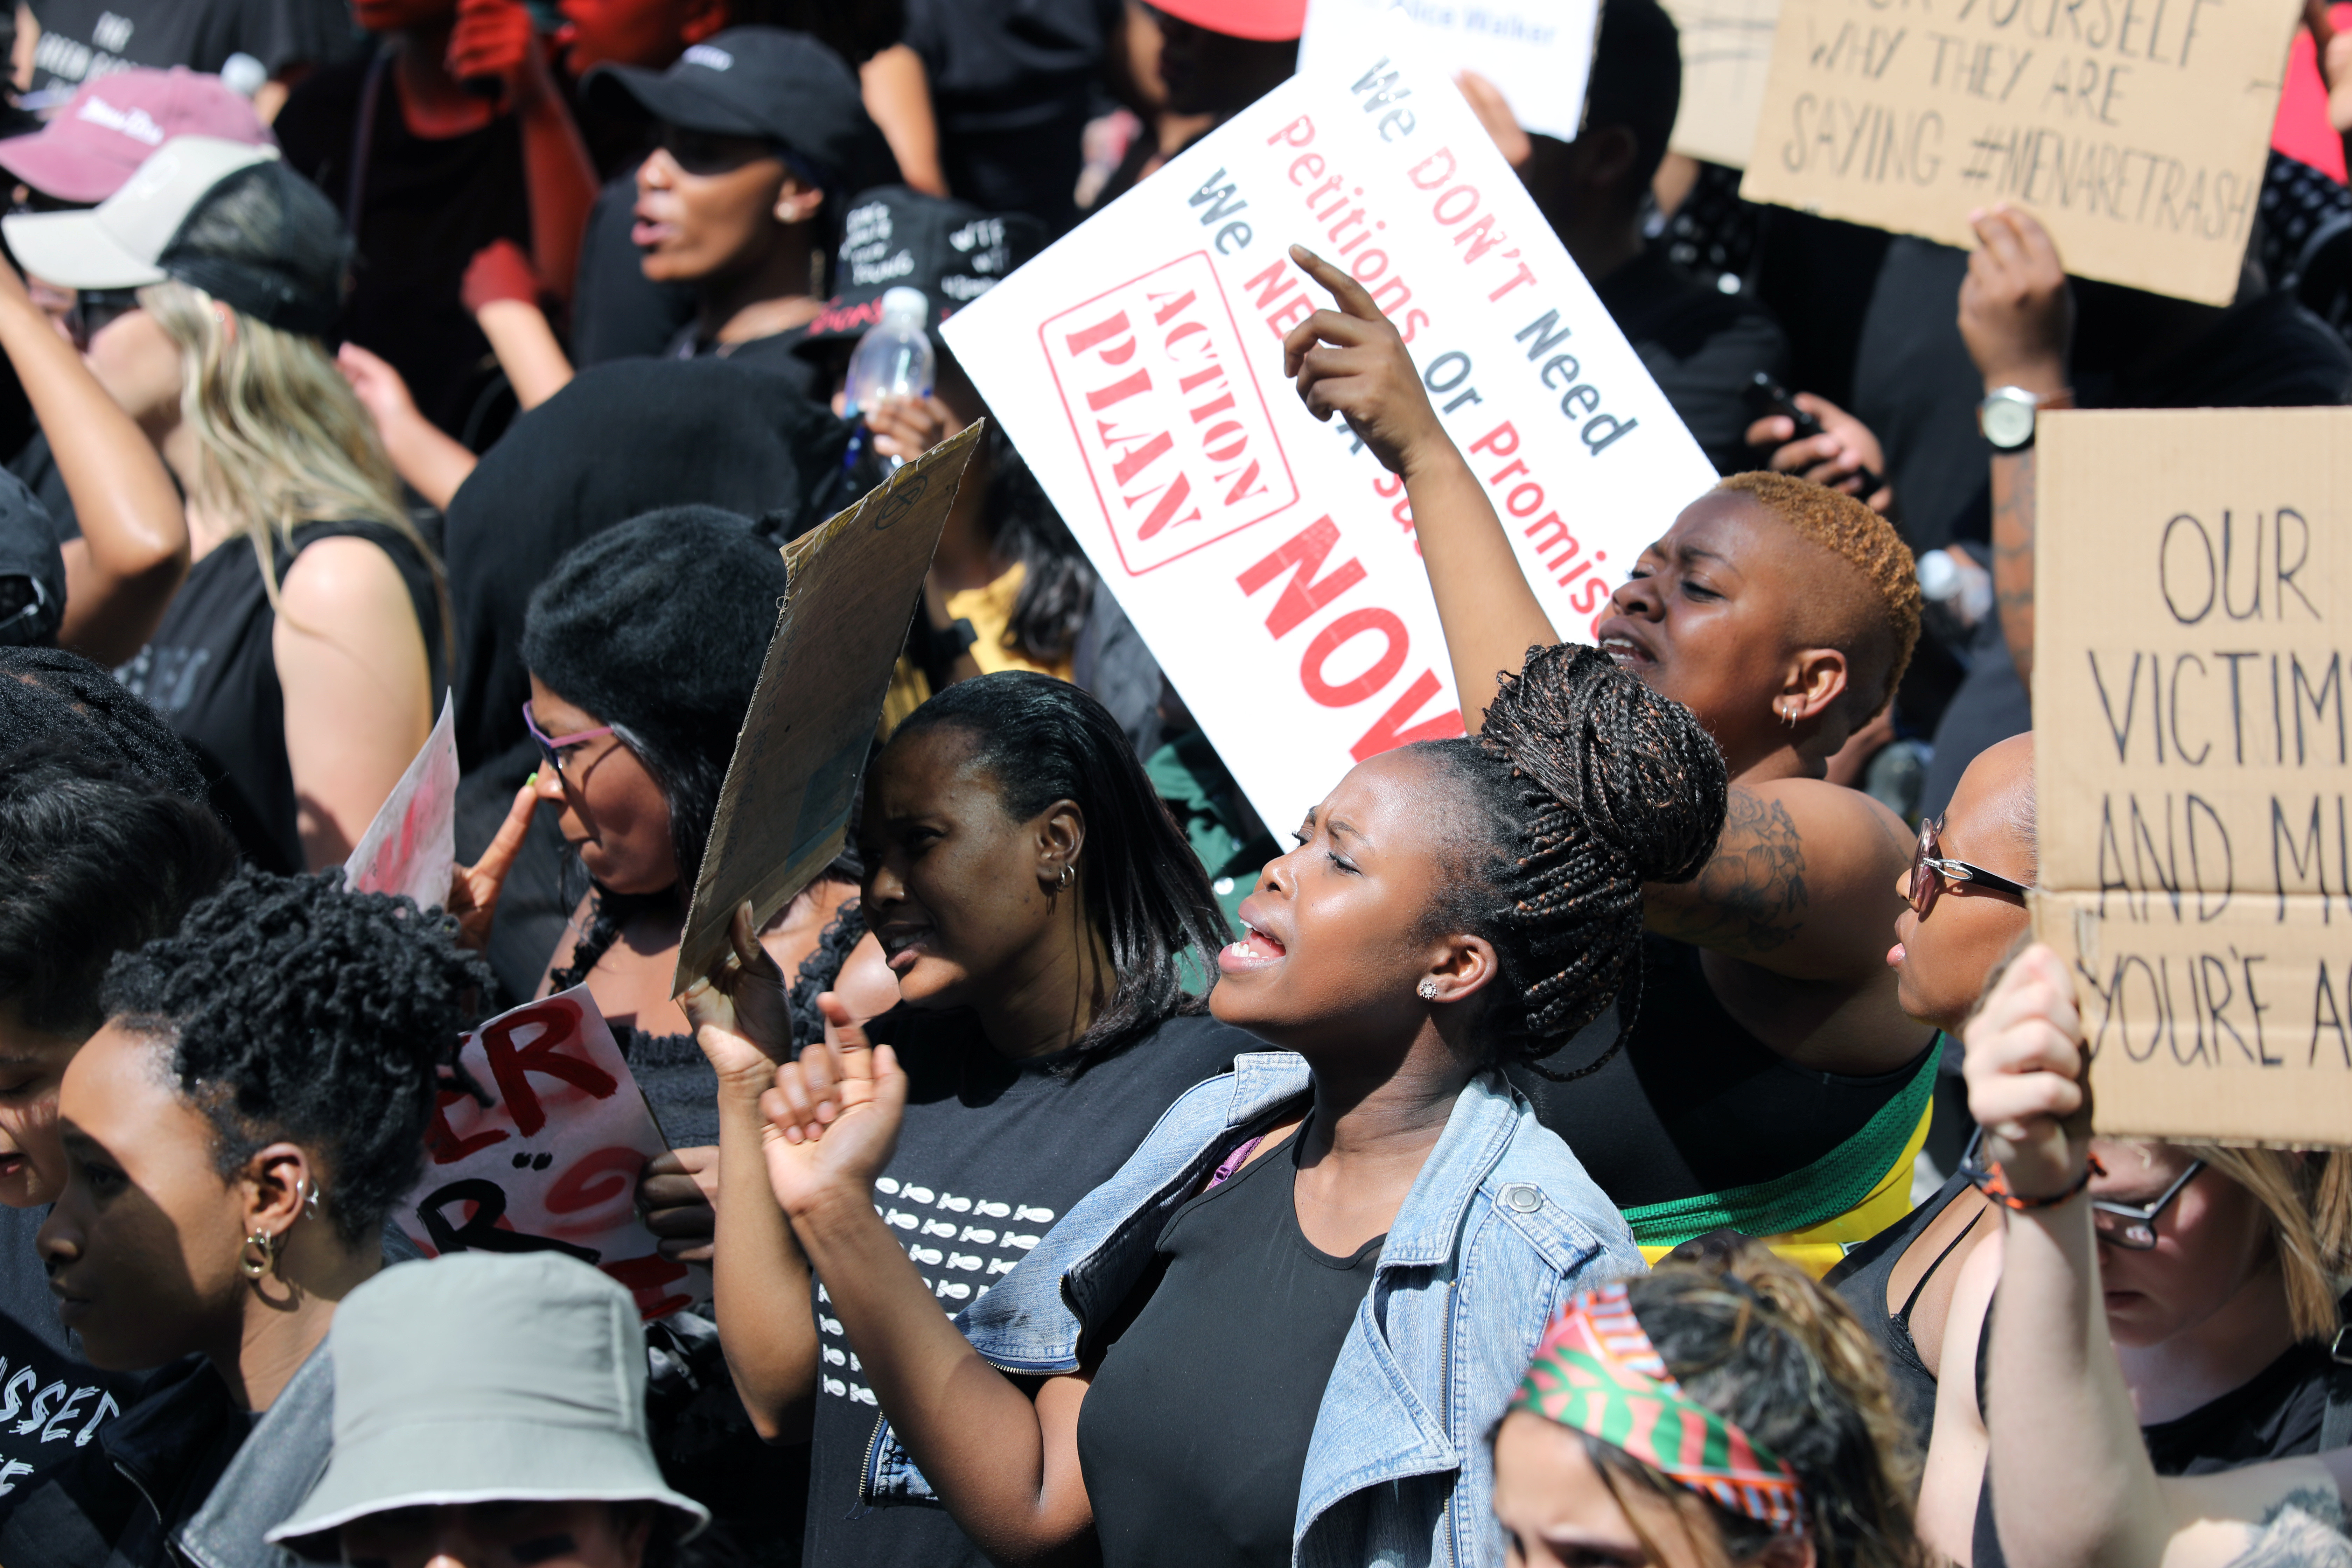 Women hold placards as they  protest against gender-based violence, outside the Johannesburg Stock Exchange in Sandton, Johannesburg, South Africa, September 13, 2019. REUTERS/Marius Bosch - RC1B04A96A60